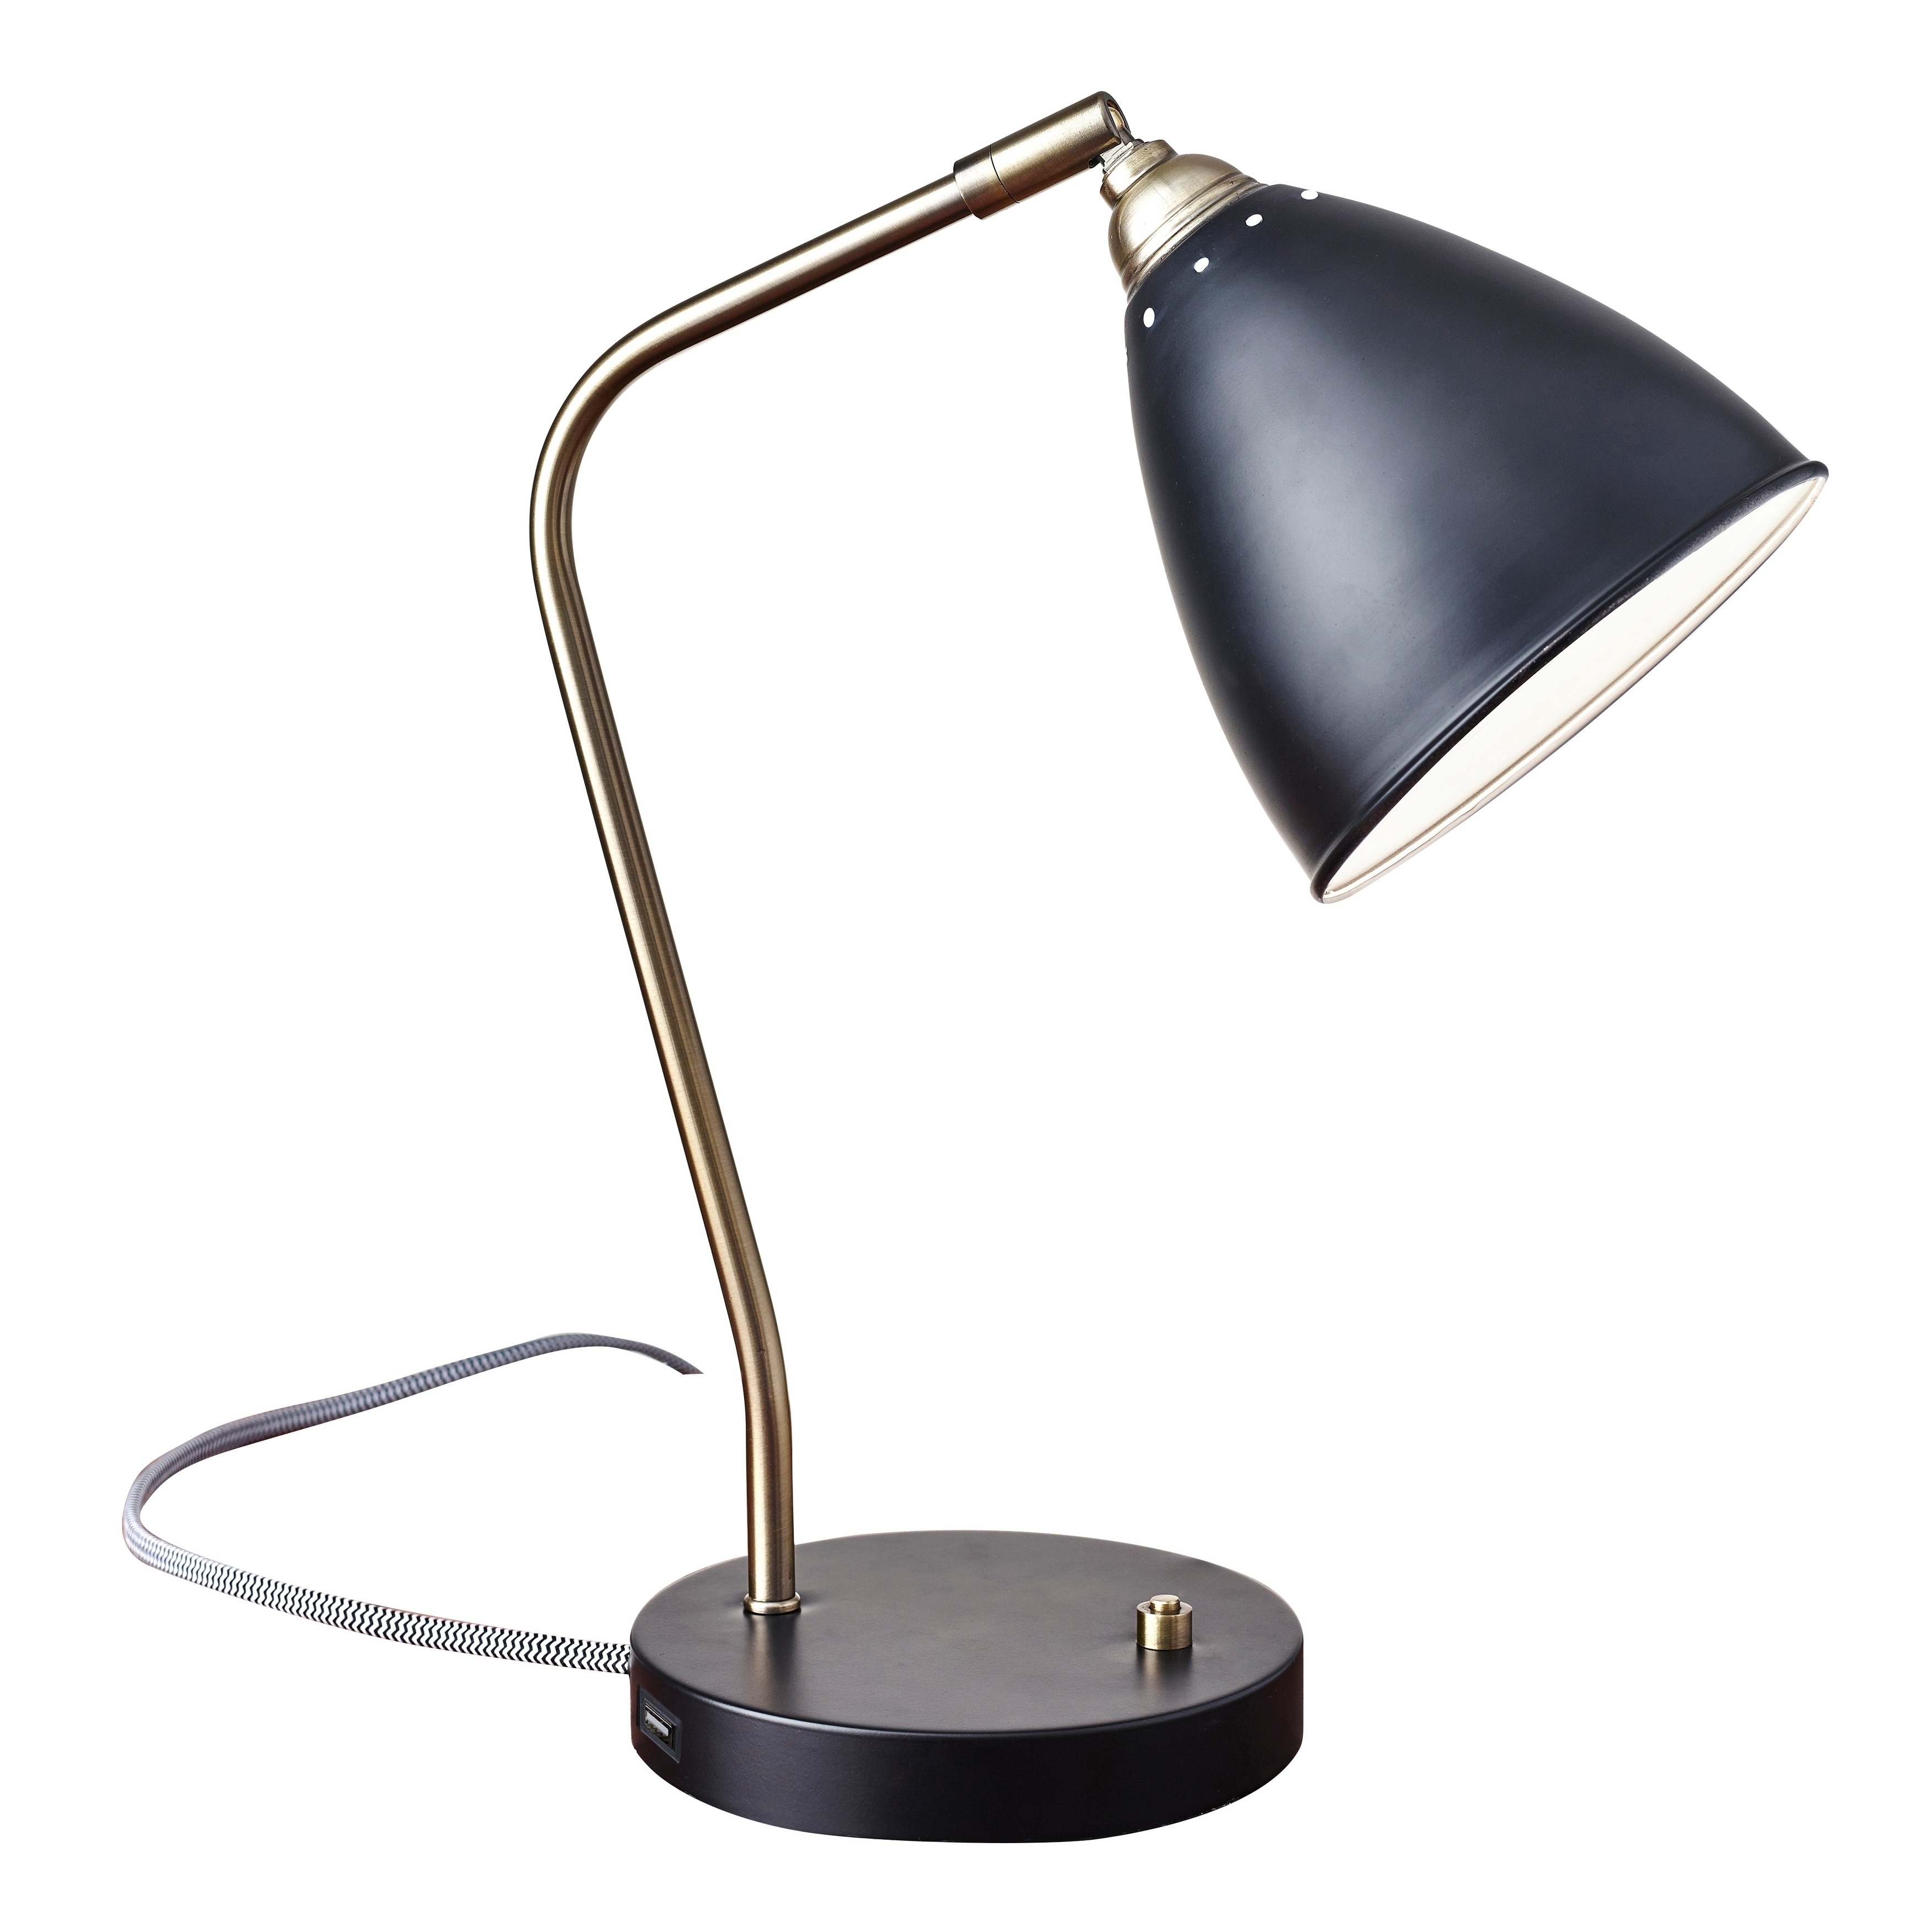 Desk Lamp Adesso Antique Brass Adjustable Chelsea Desk Lamp